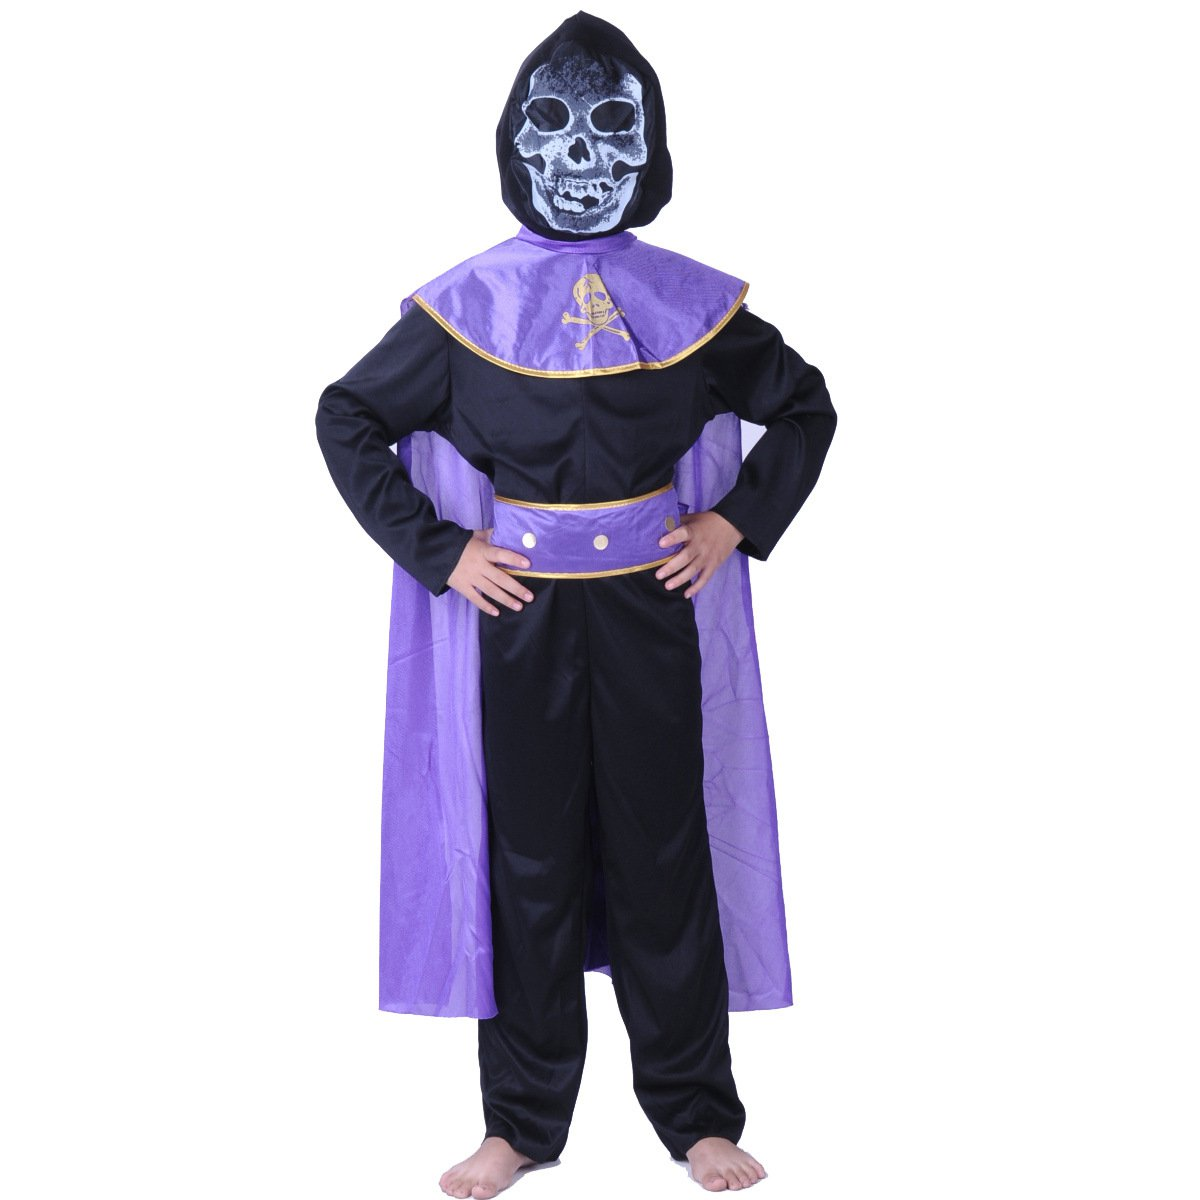 Halloween Costume Ghost Festival Costume Halloween Supplies Horror Nigga Suit Suit